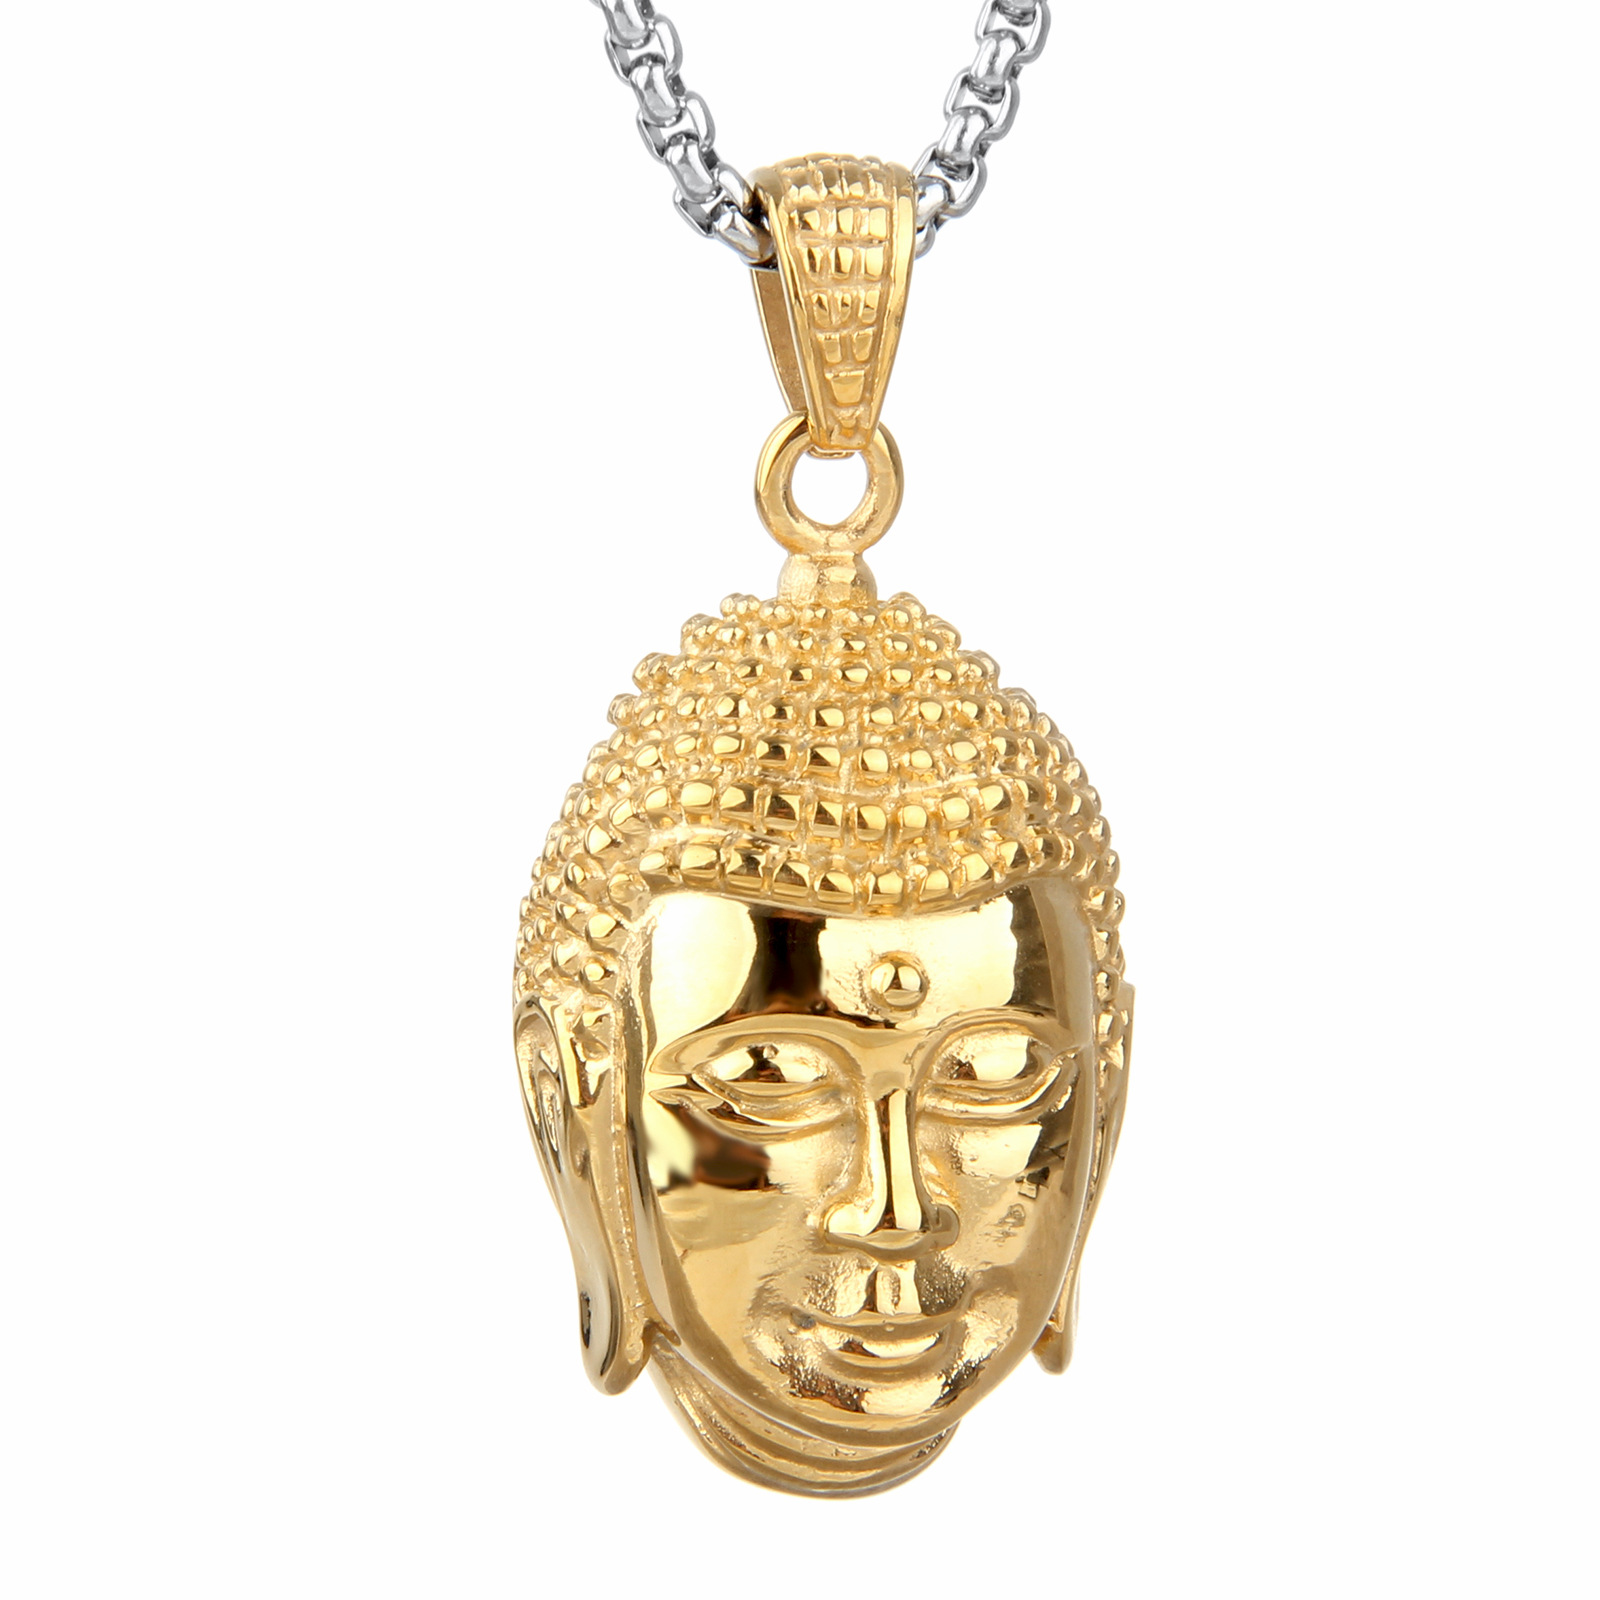 Amazon China Stainless Steel Men Jewelry Wholesale Necklace Wind Titanium  Buddha Pendant Personalized Jewelry Floating Charms-in Pendants from Jewelry  ... 3b05a290e4fb